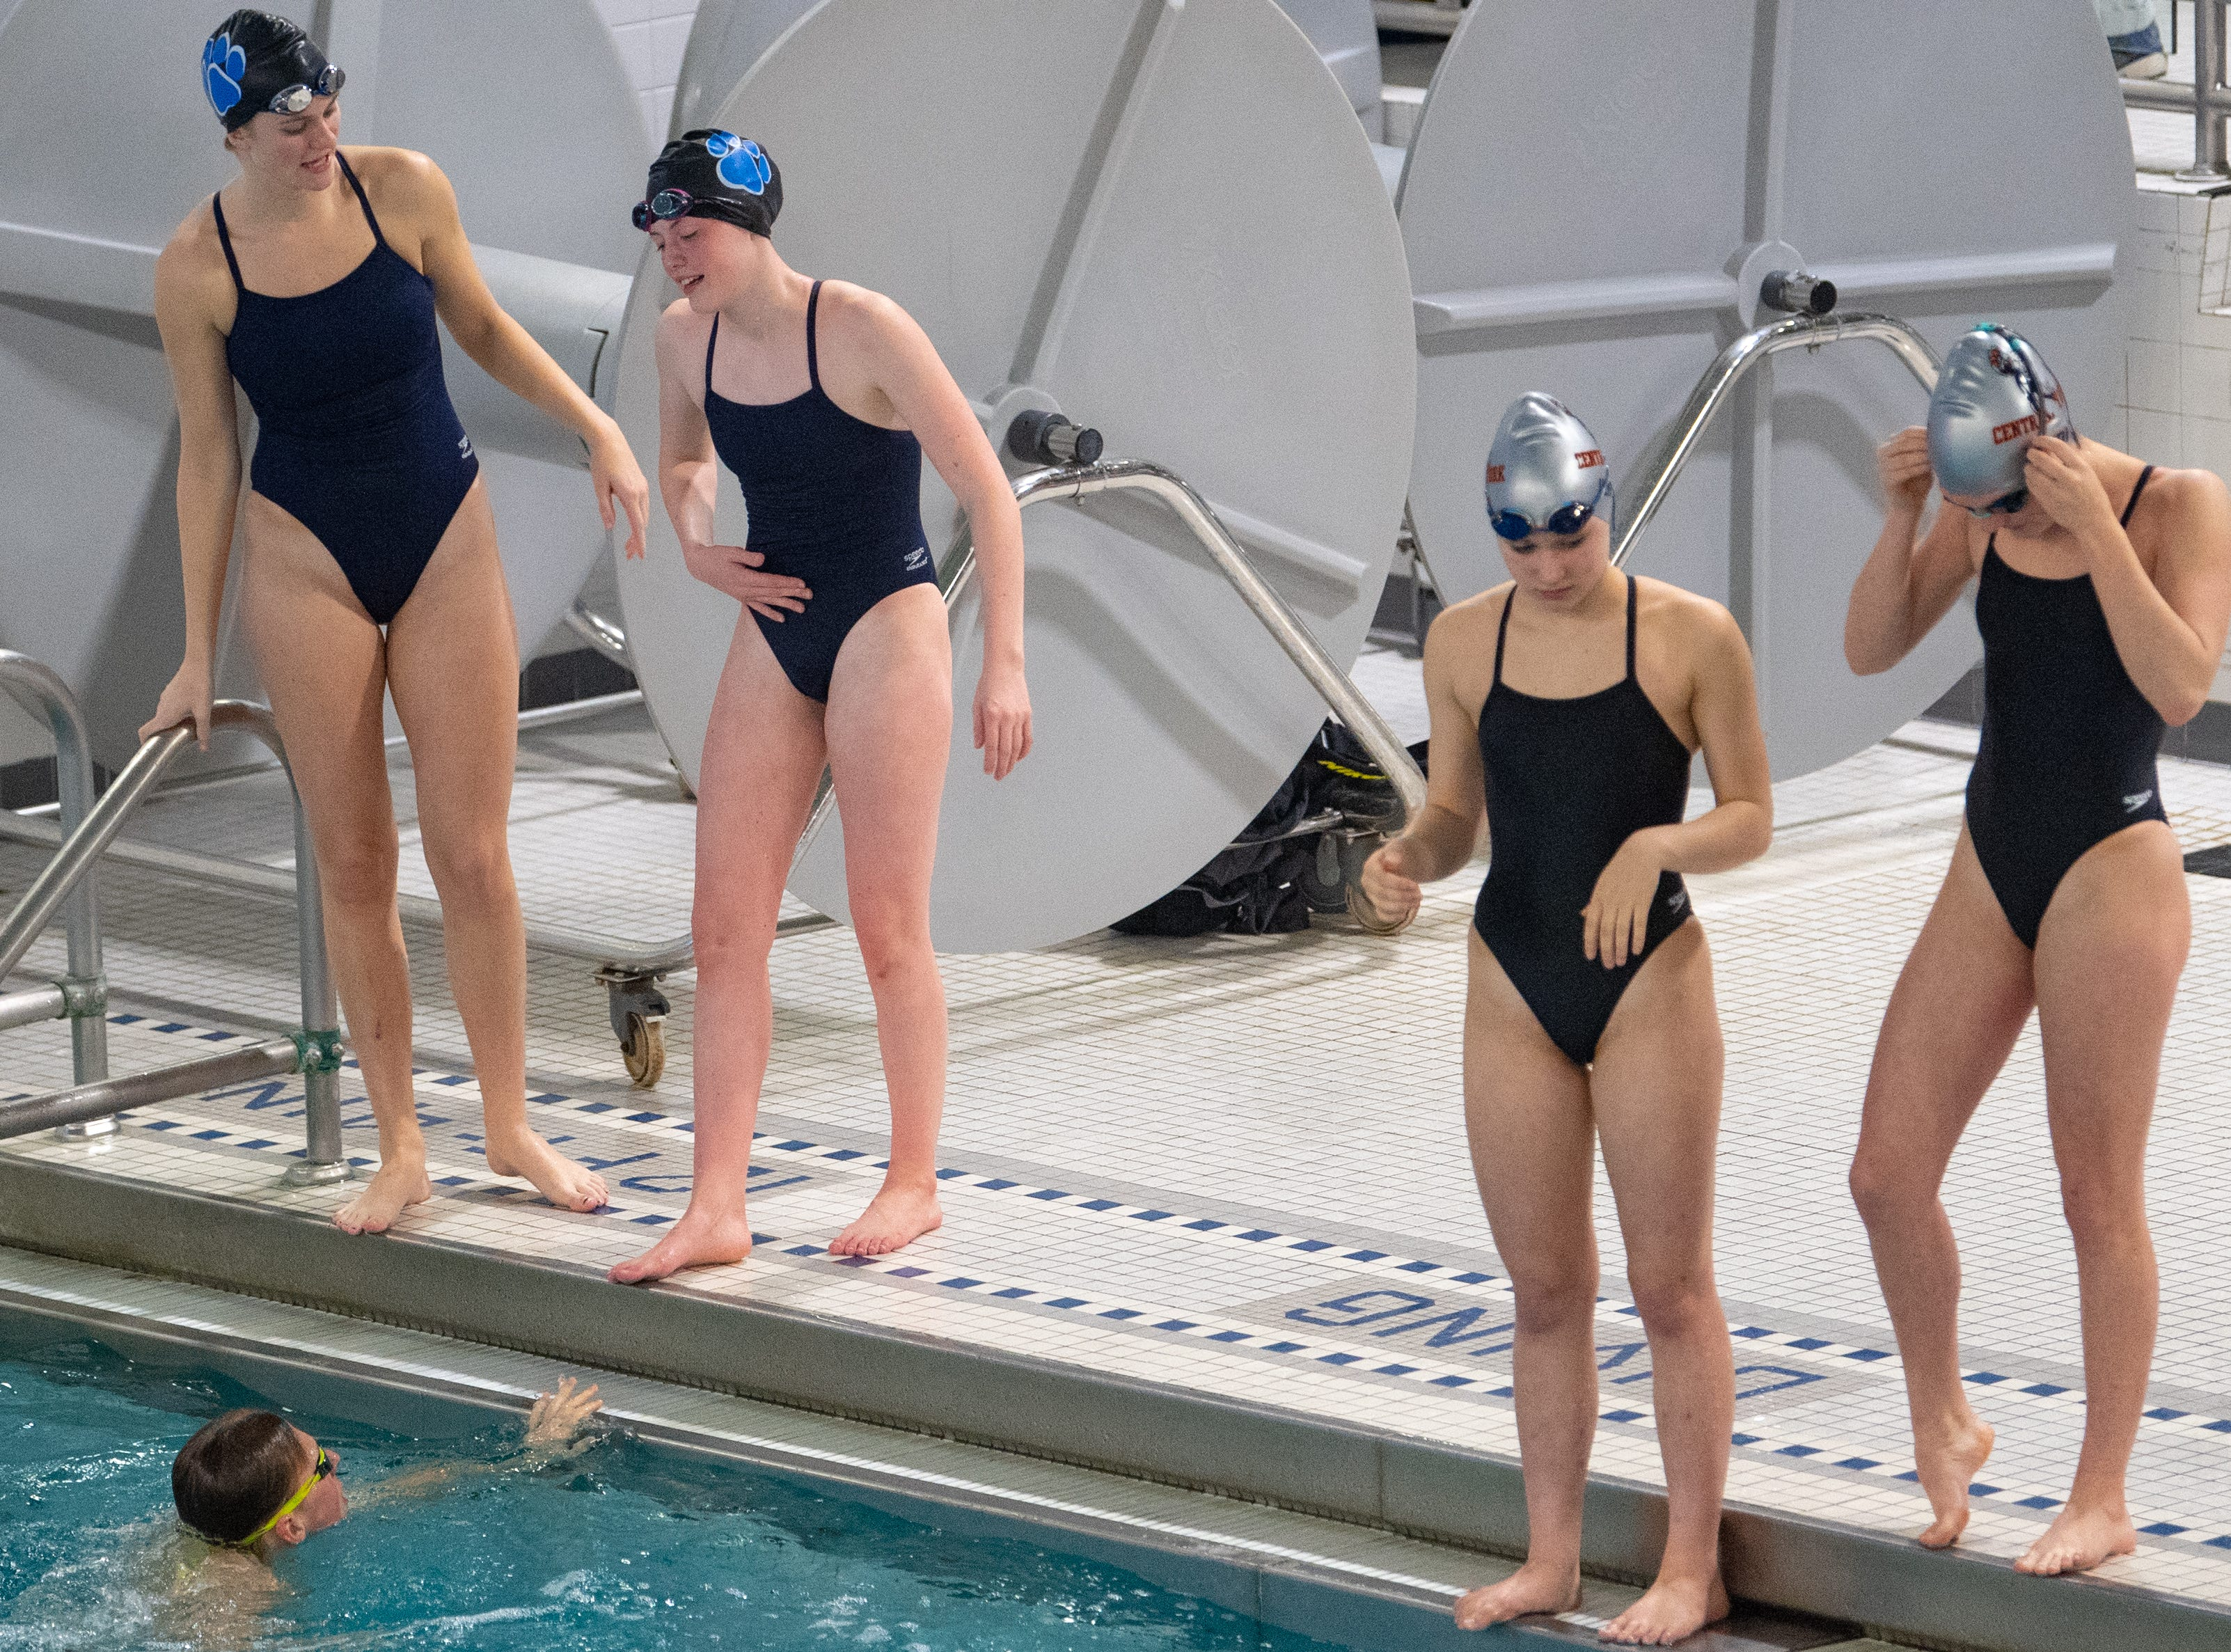 Dallastown and Central York warm up before their race in the practice pool during the boys' and girls' swim meet, January 10, 2019. The Panthers defeated the Wildcats 93 to 77 and the Lady Panthers defeated the Lady Wildcats 96 to 74.